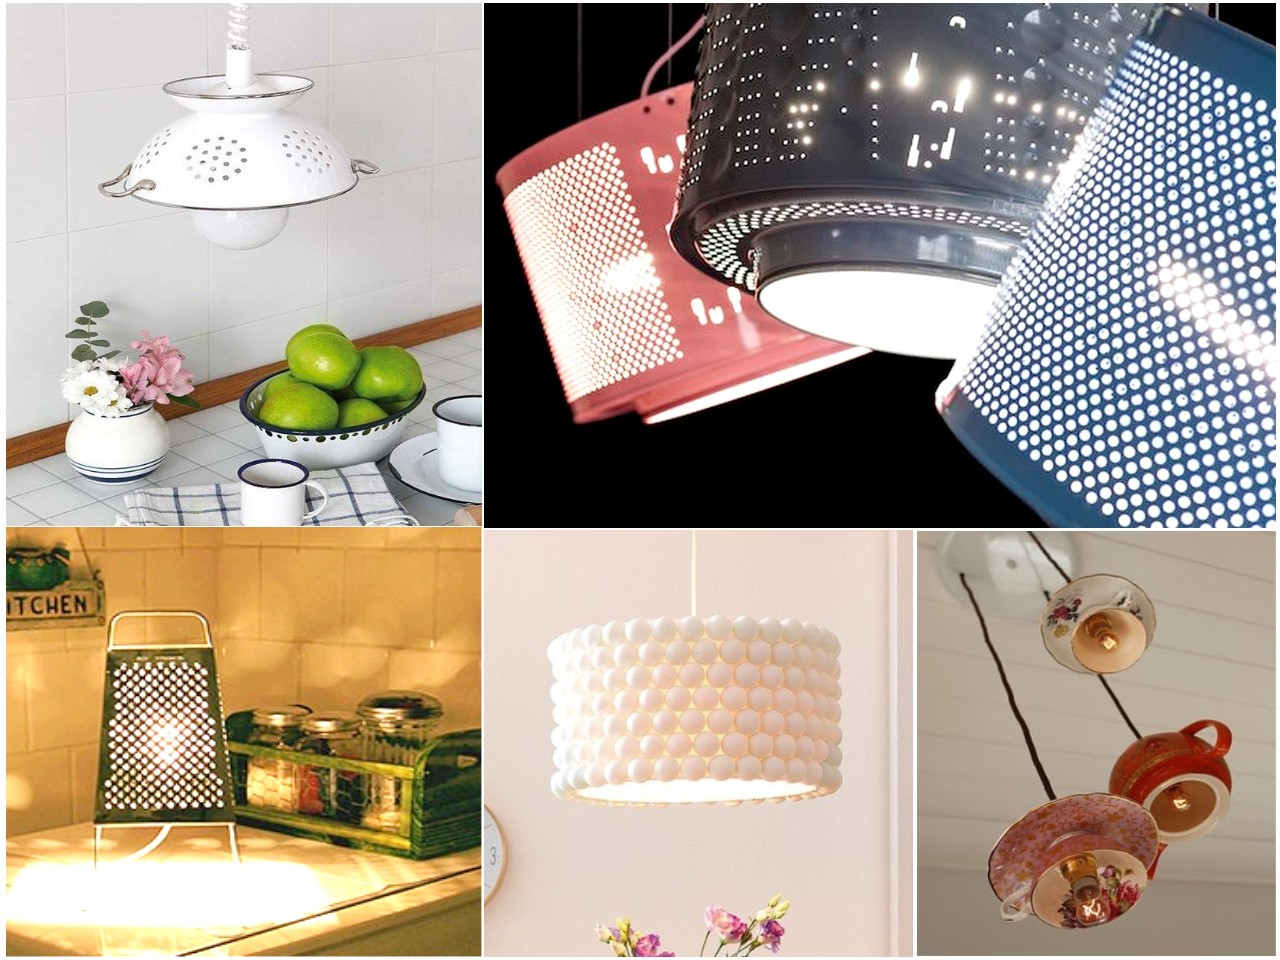 10 ideas originales de reciclar para decorar con l mparas - Articulos decoracion ...